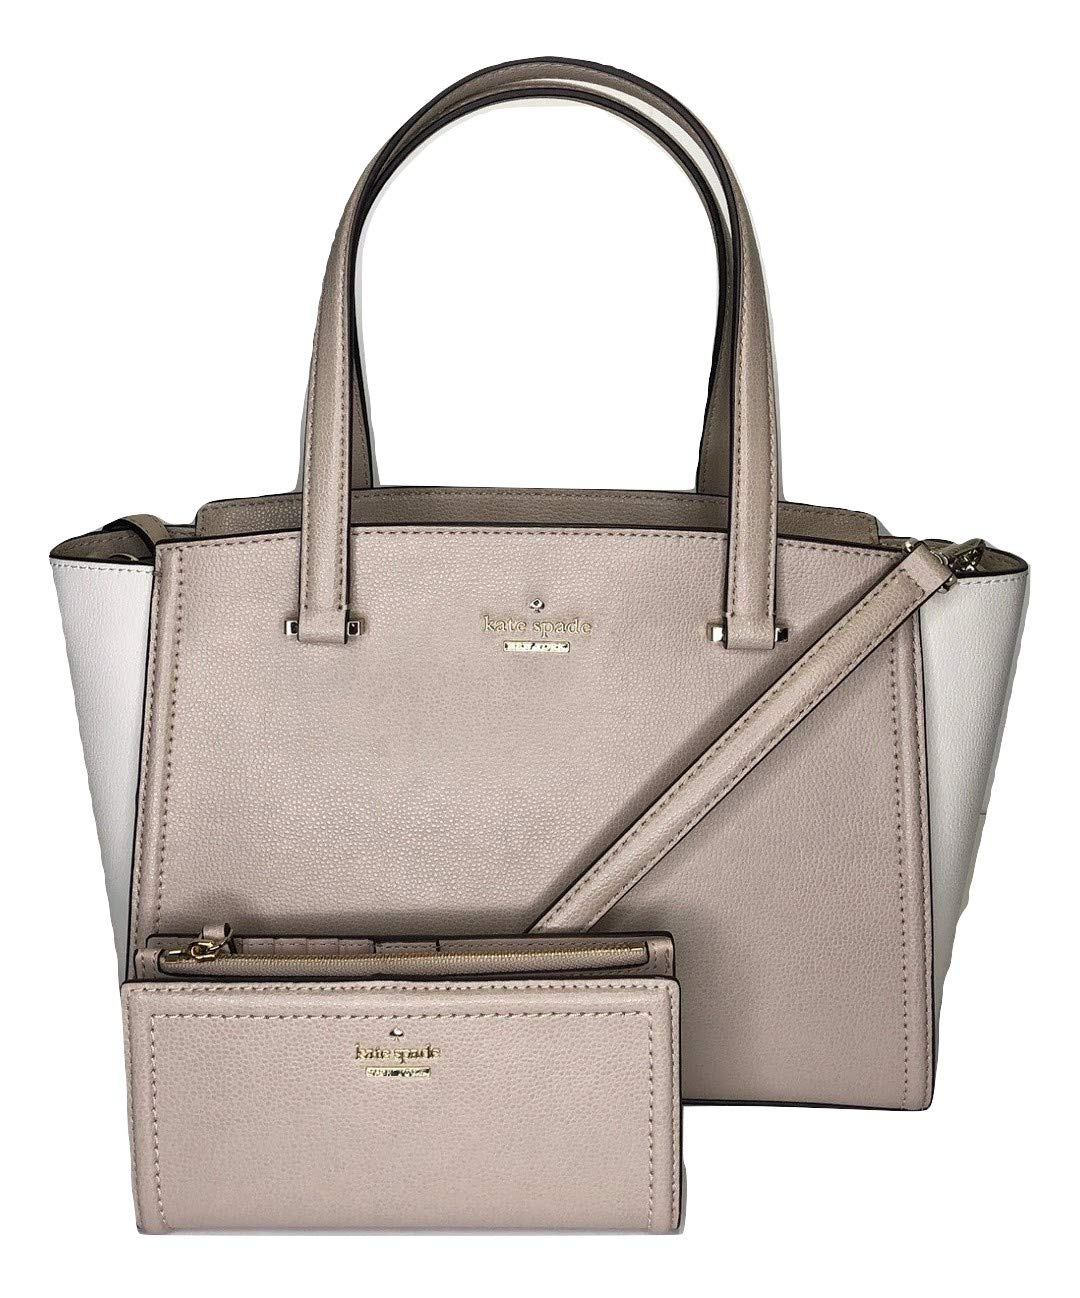 Kate Spade New York Patterson Drive Small Geraldine bundled with matching Kate Spade New York Patterson Drive Braylon Wallet (Warm Beige/Cement)